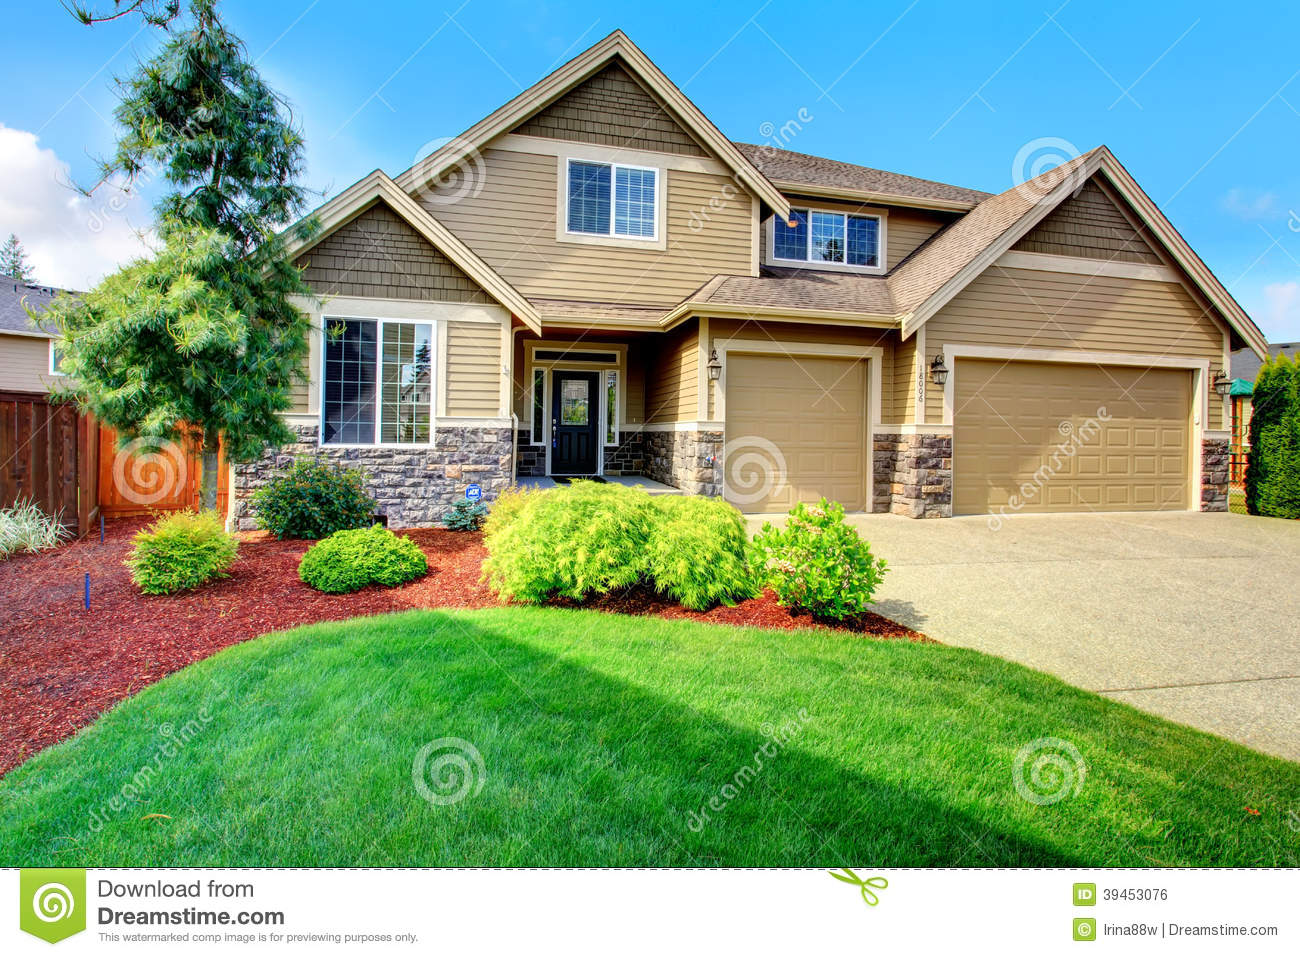 Luxury house ith beautiful curb appeal stock photo image - Designing and building your own home ...